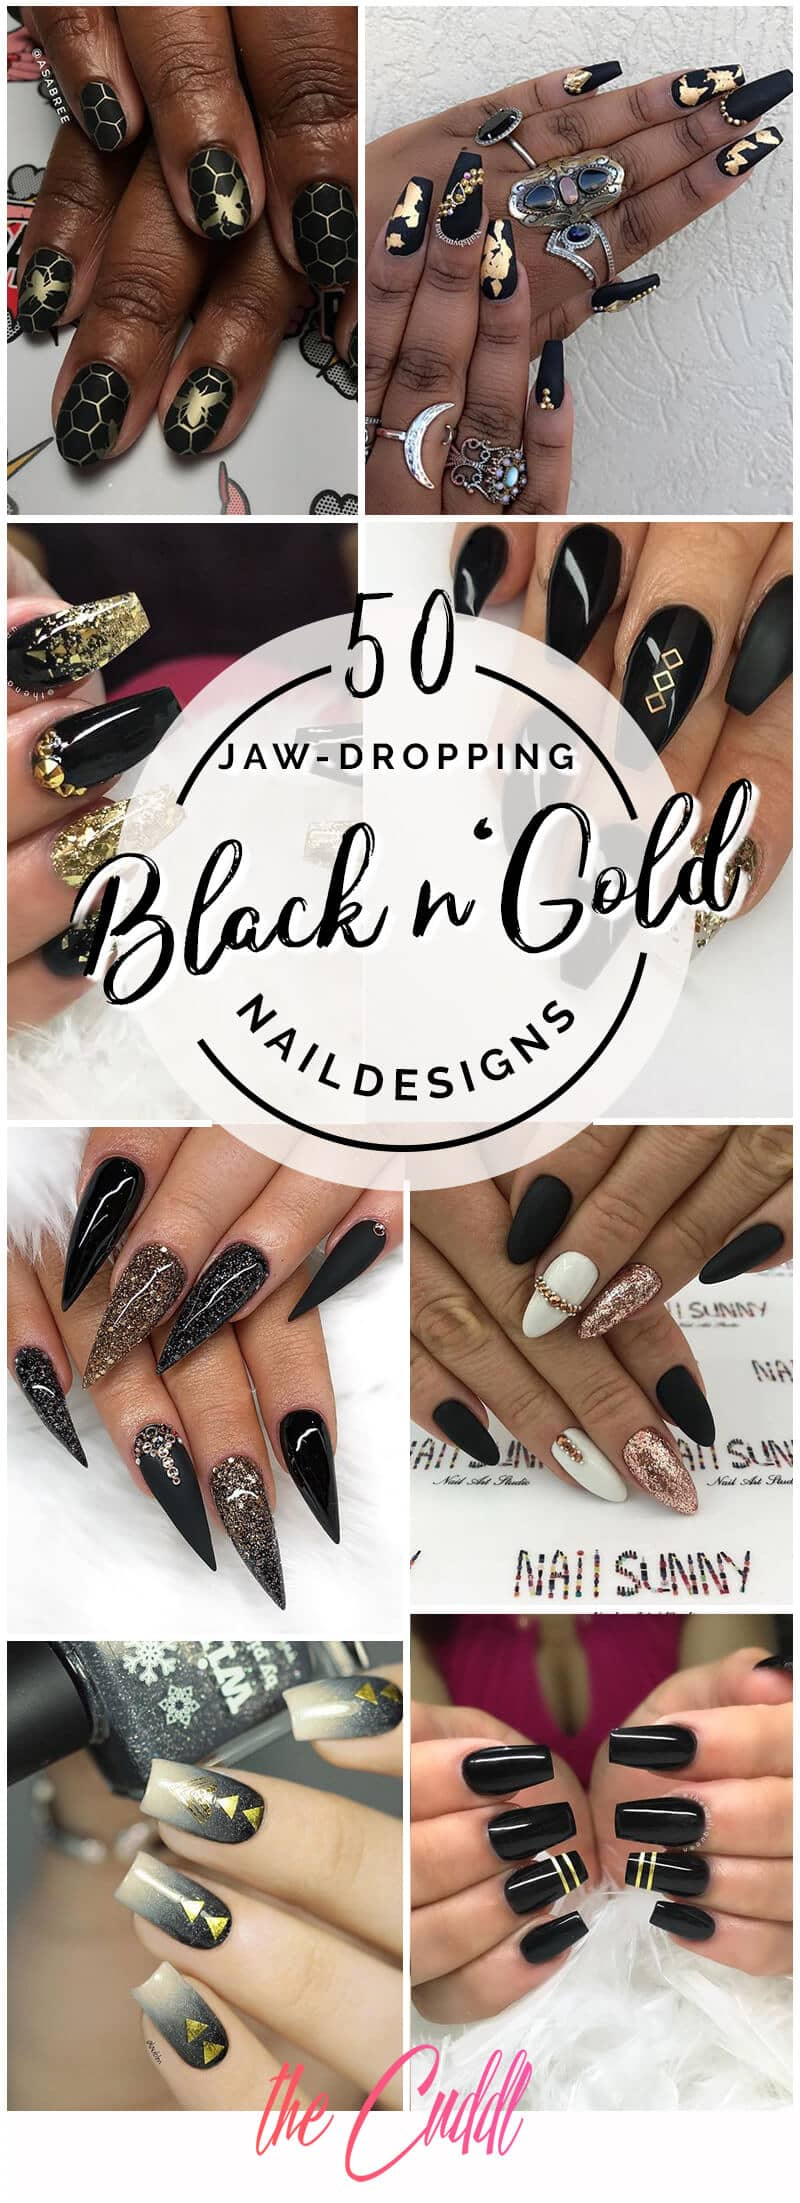 50 Jaw-Dropping Designs for Black and Gold Nails That Will Make You Gasp